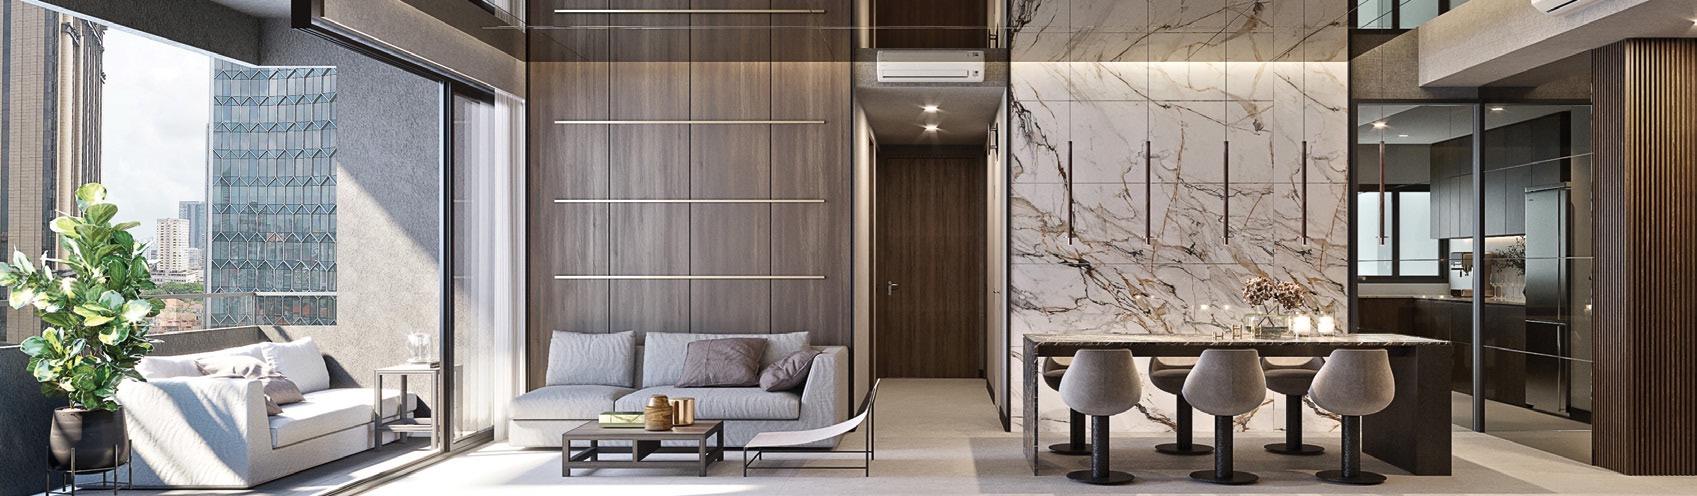 Artist's Impression of Midtown Modern Showflat . By GuocoLand